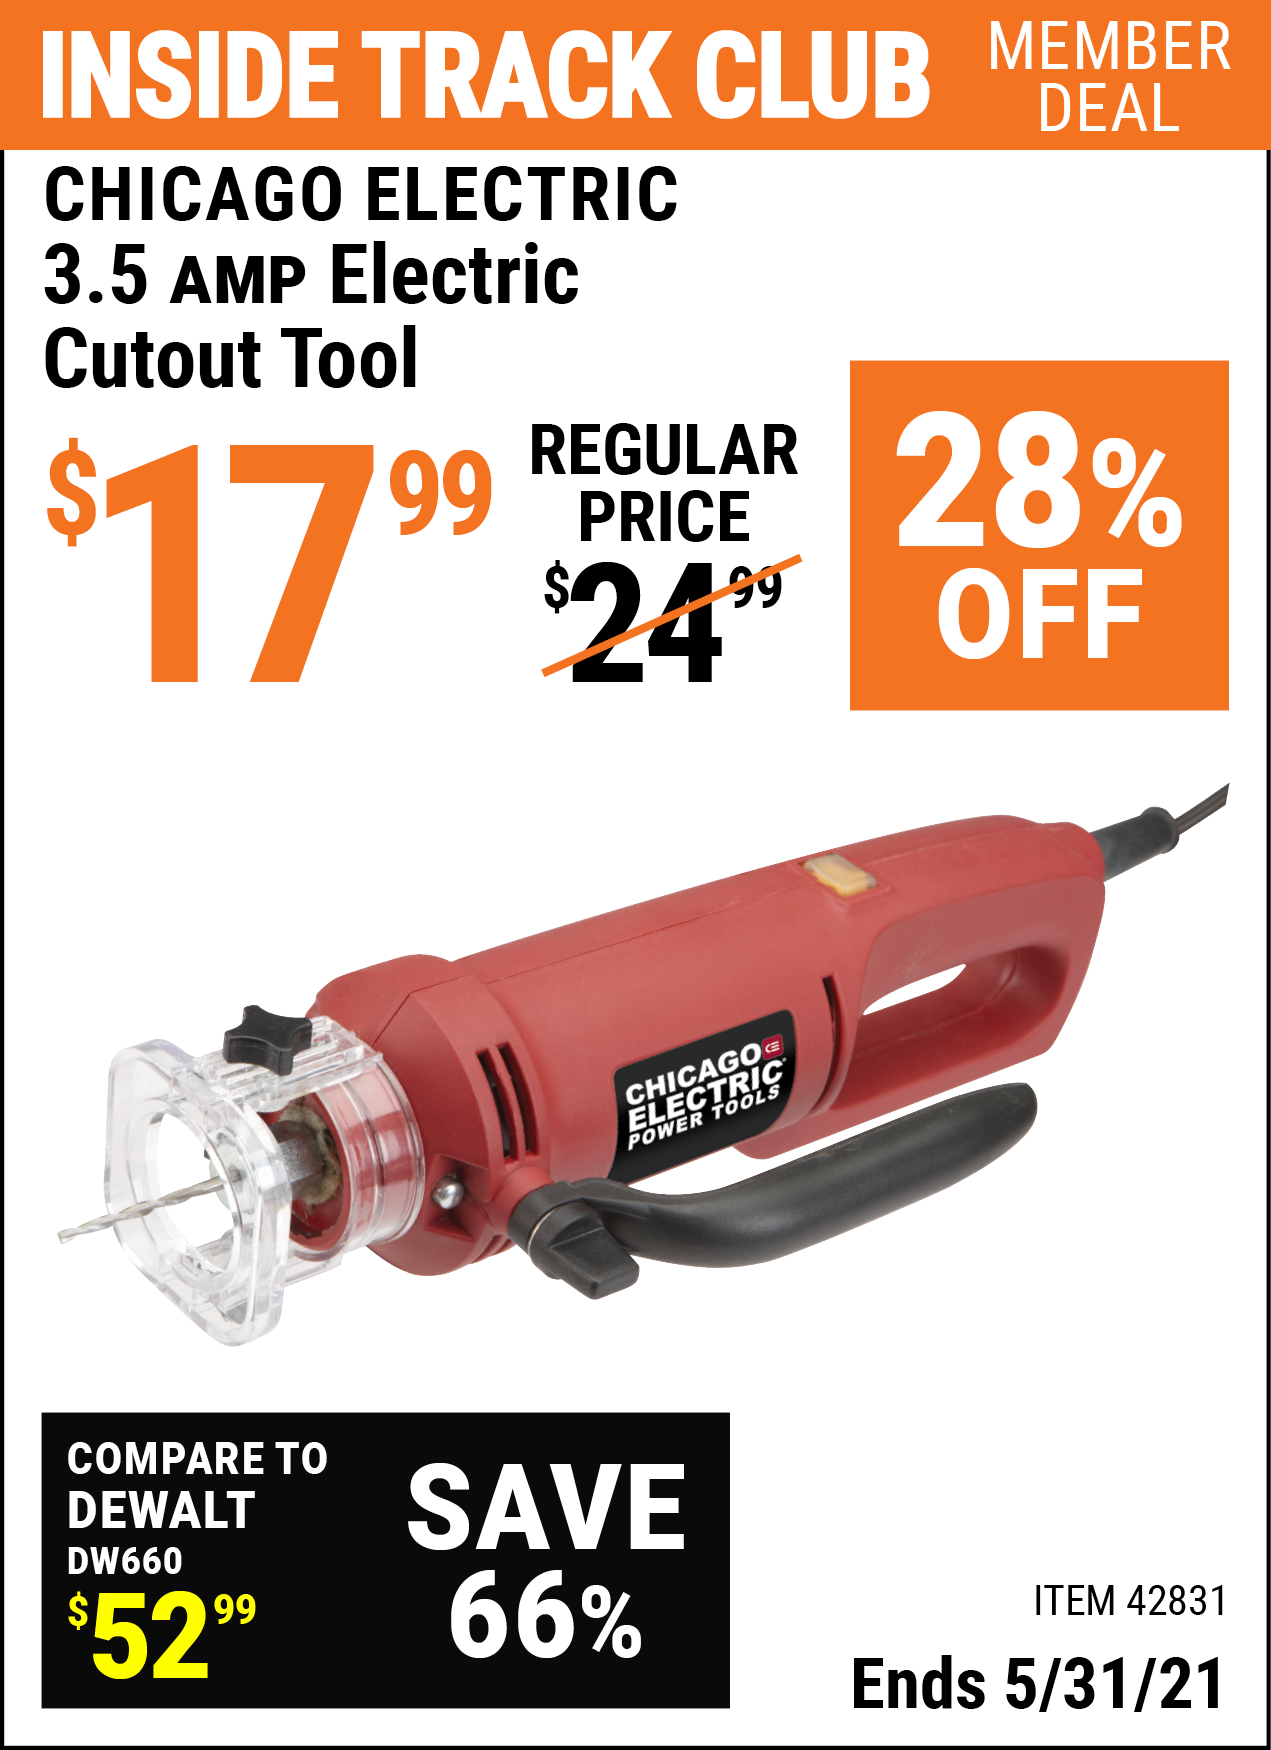 Inside Track Club members can buy the CHICAGO ELECTRIC 3.5 Amp Heavy Duty Electric Cutout Tool (Item 42831) for $17.99, valid through 5/31/2021.